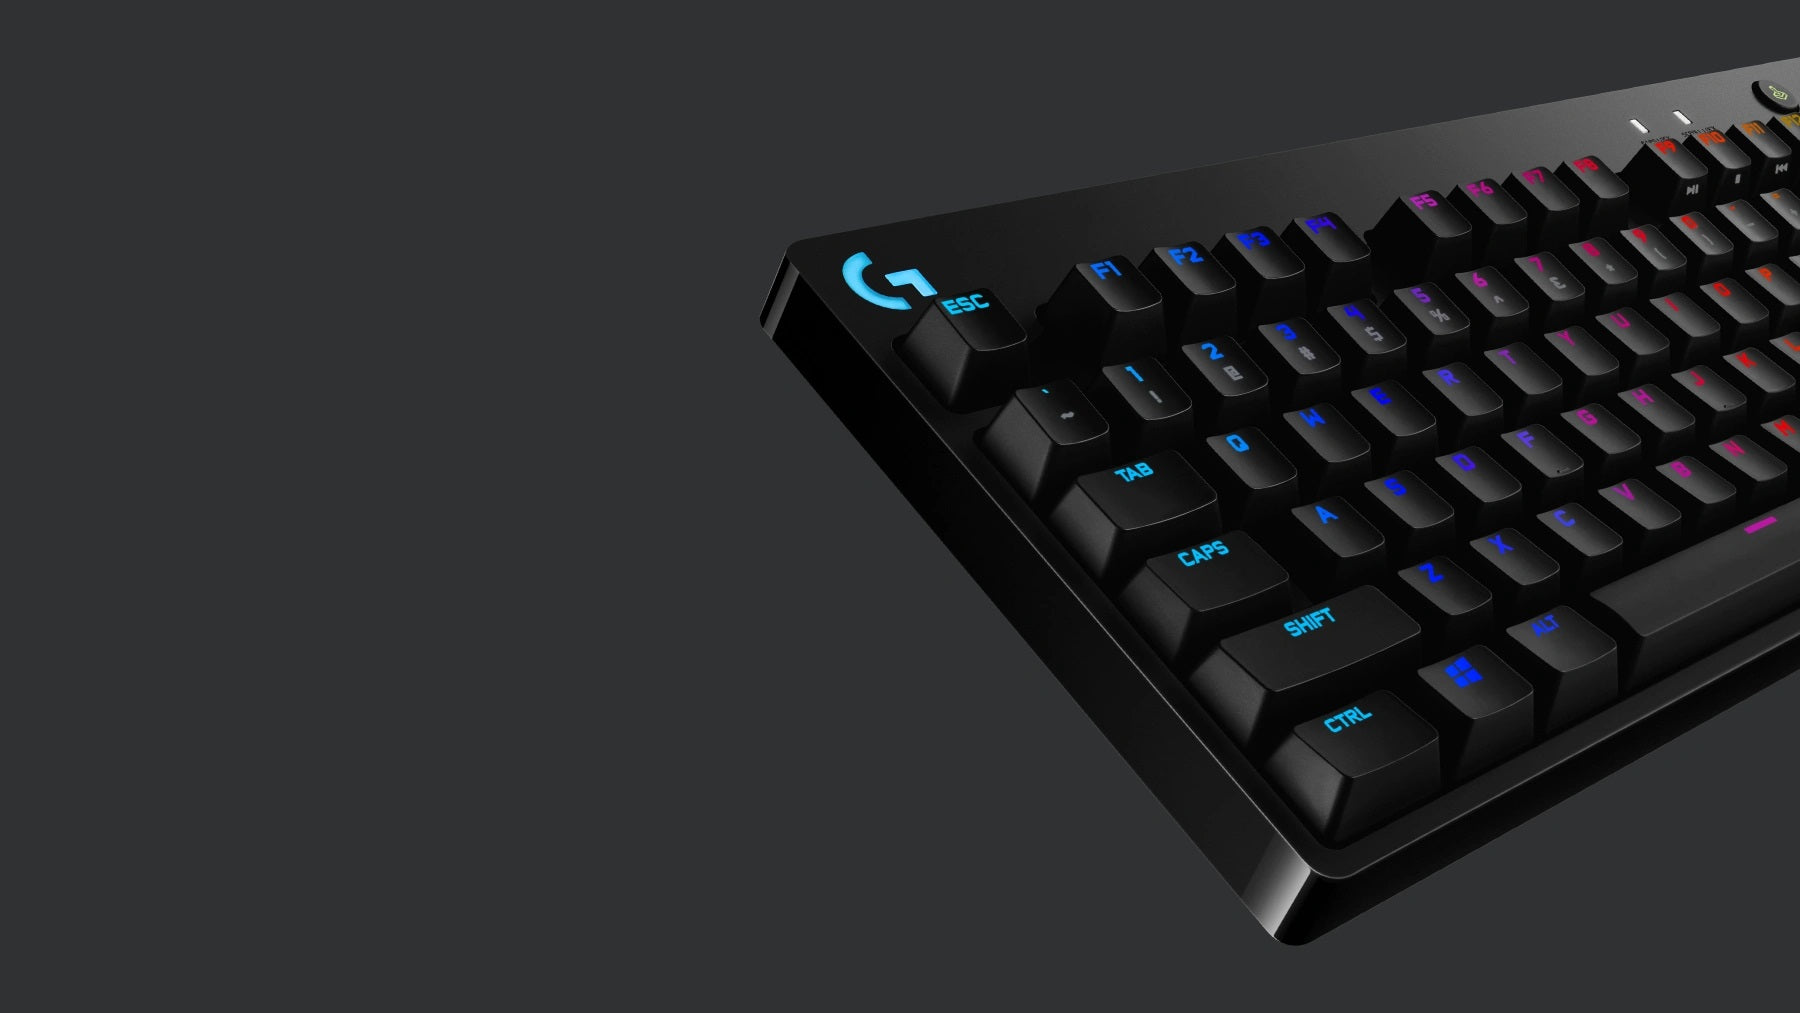 LIGHTSYNC RGB - Highlight critical keys, or just show your team solidarity. Customize lighting and animations with Logitech G HUB software. PRO X Keyboard also allows you to save a static lighting design to onboard memory for use on tournament systems.